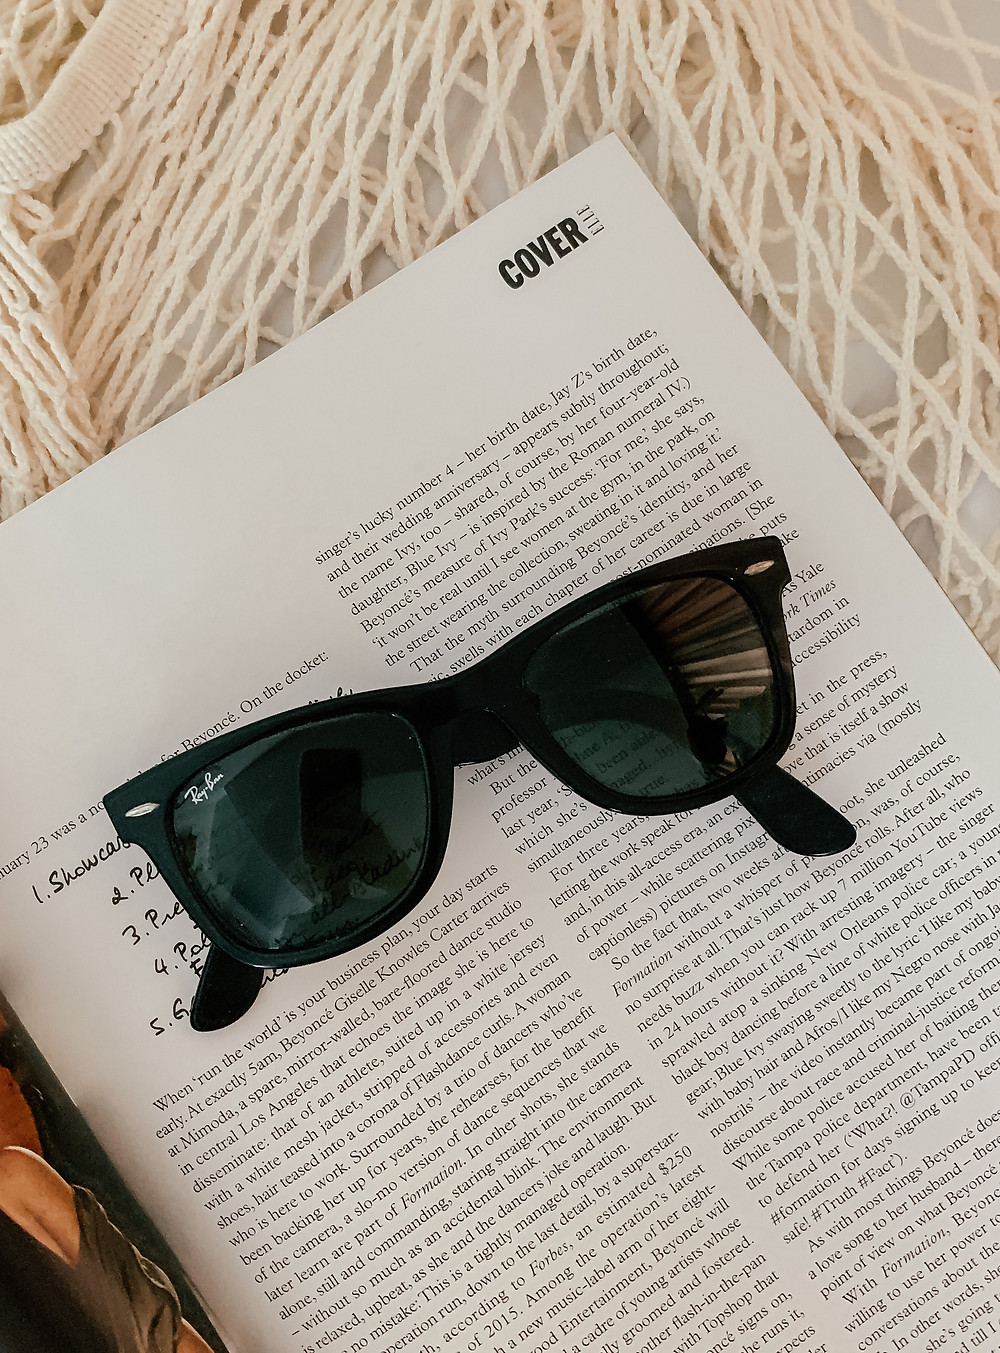 RAY-BAN Wayfarer | TOP 10 Sunglasses We Recommend | Accessories | A Style Alike